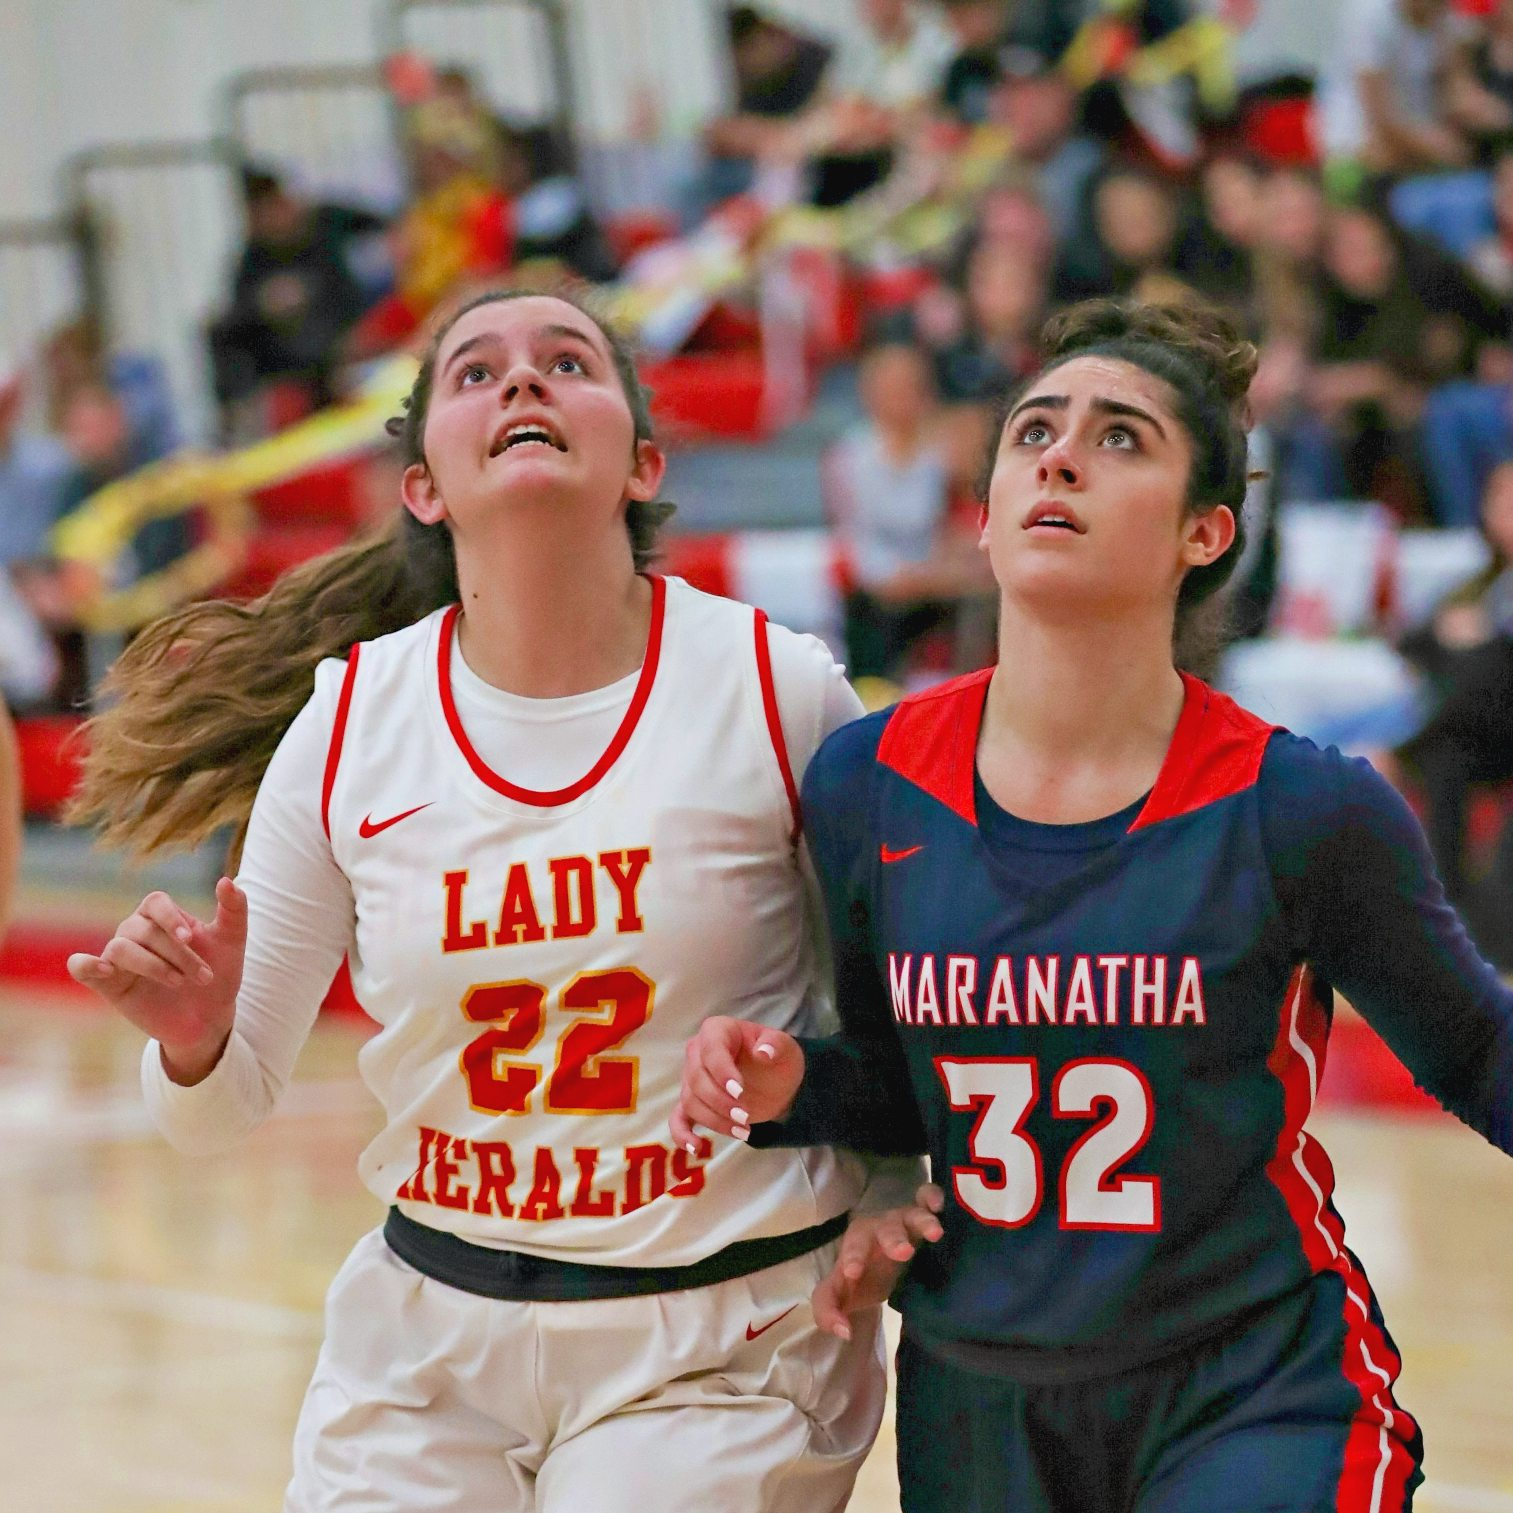 WC Basketball's Haley Gainer Named One of Top Returning Rebounders in Orange County